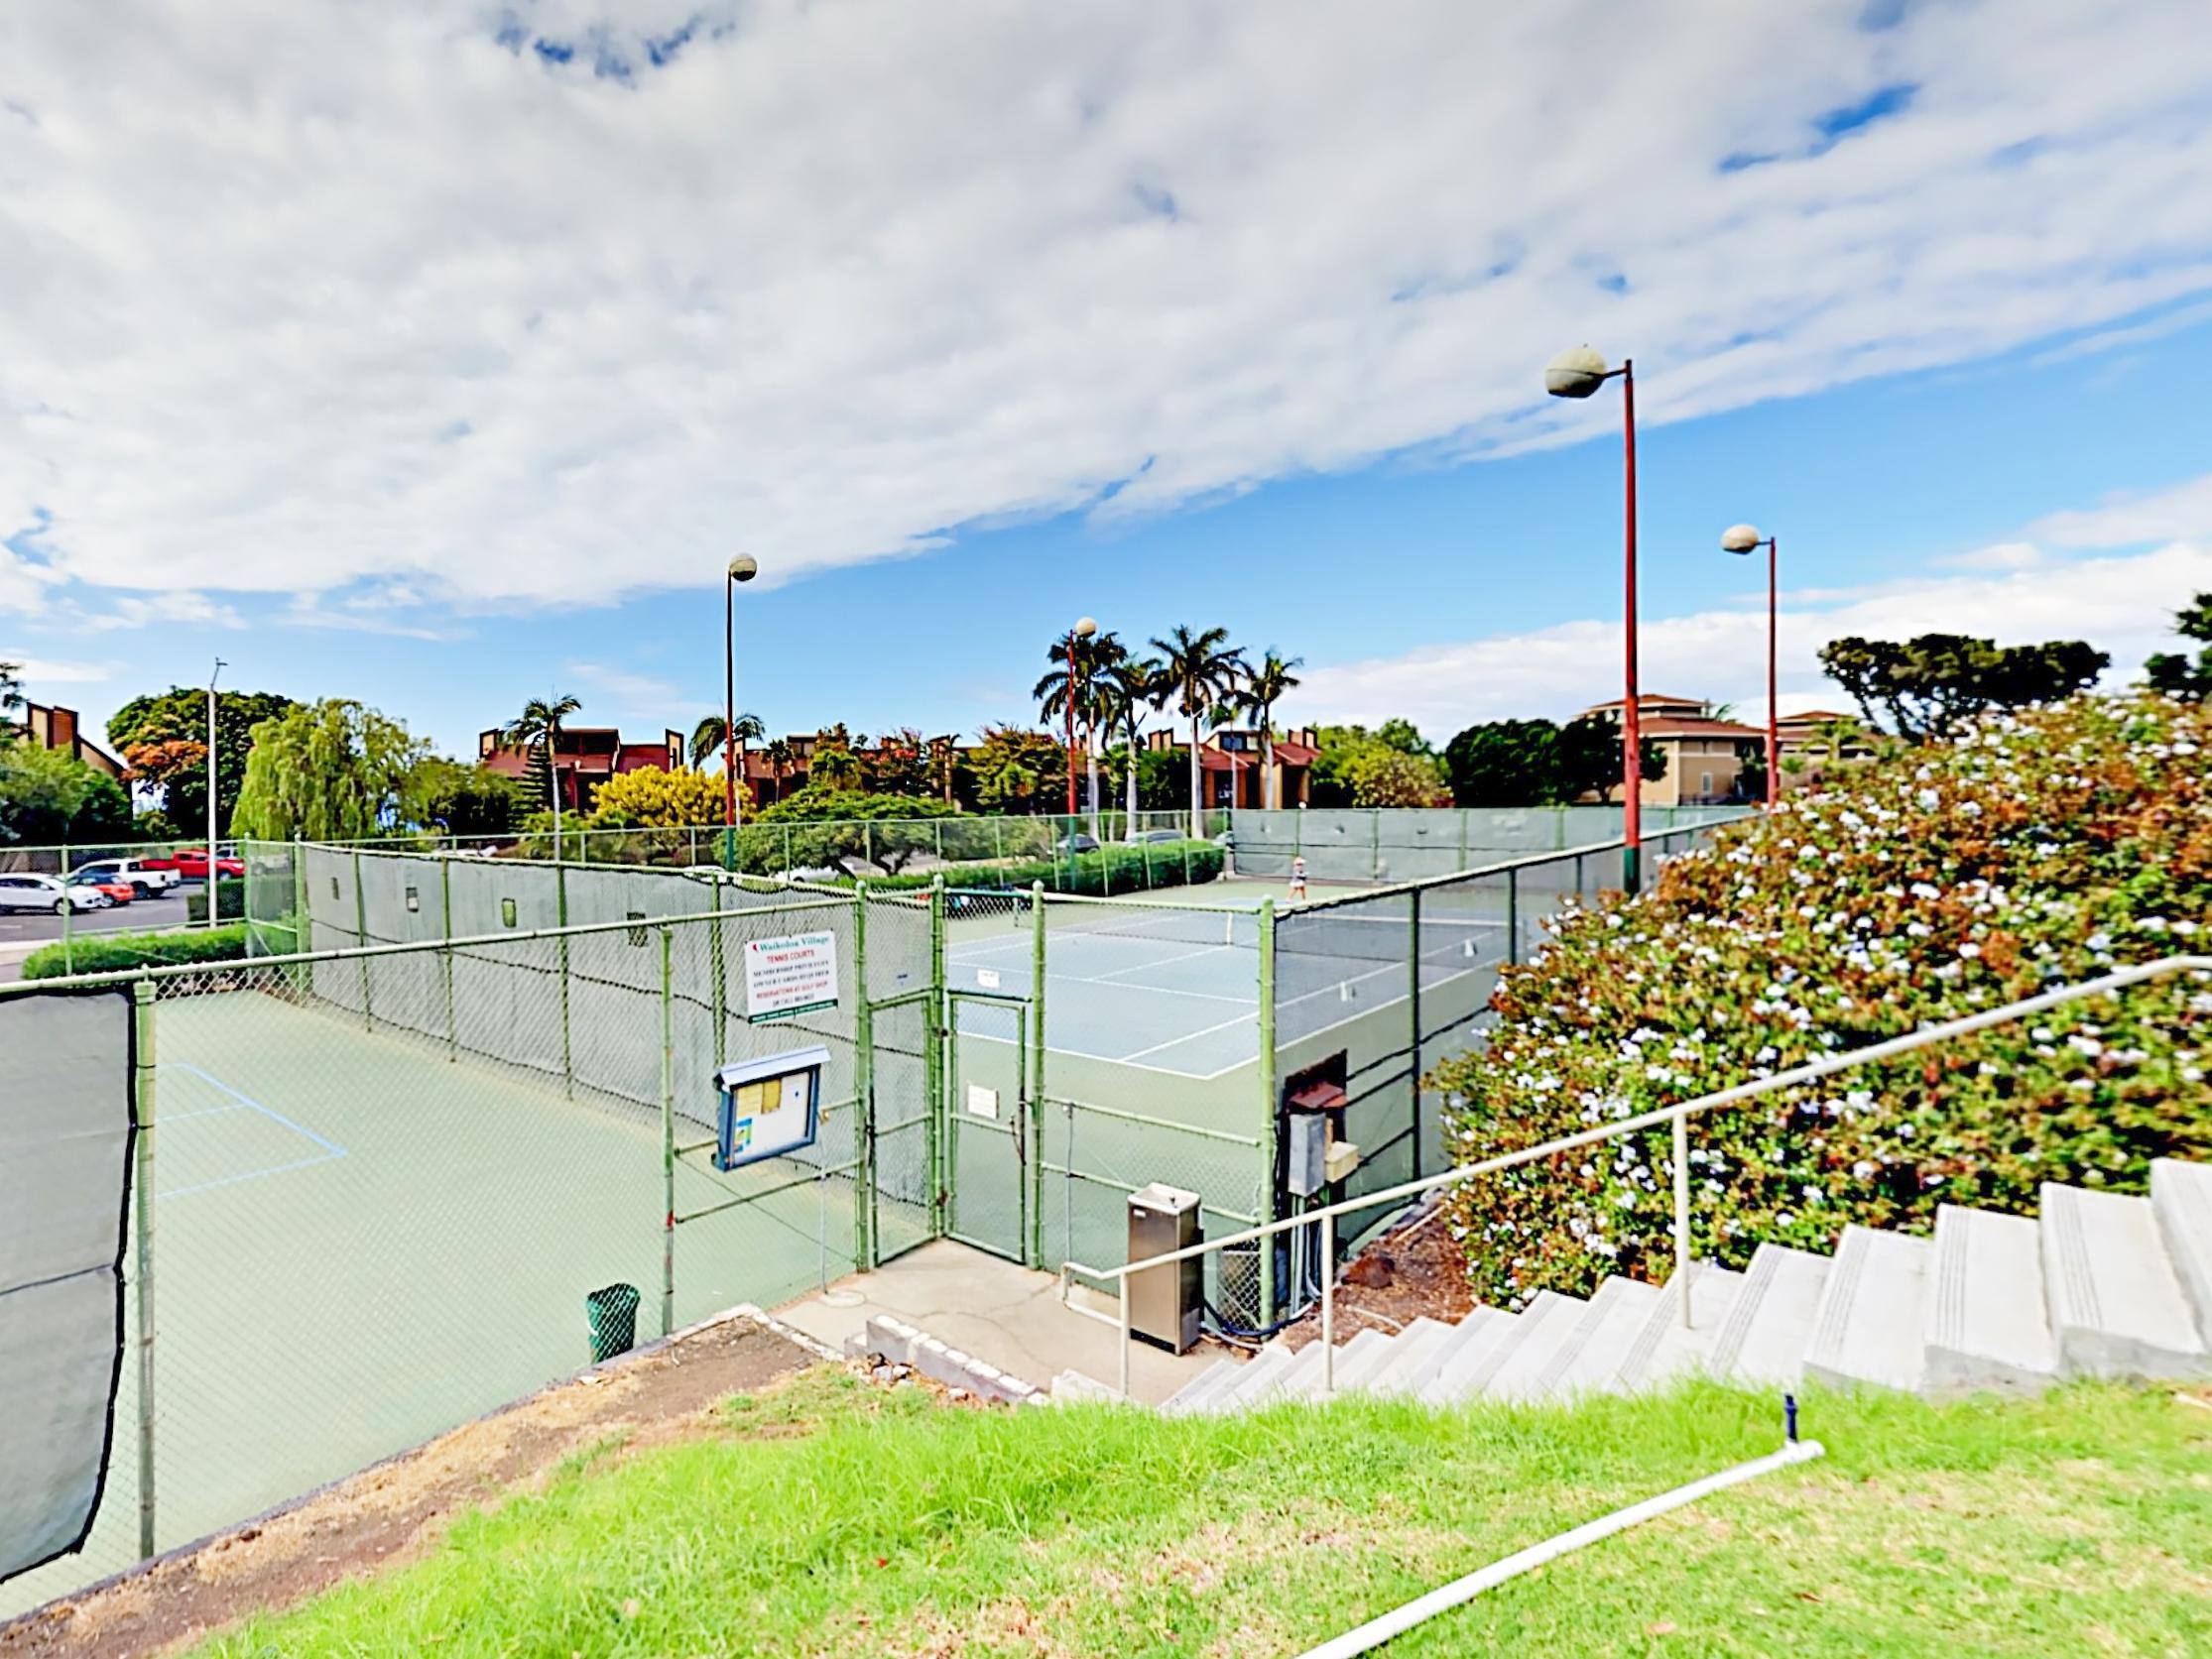 Practice your serve on the community tennis courts, just steps from your rental.